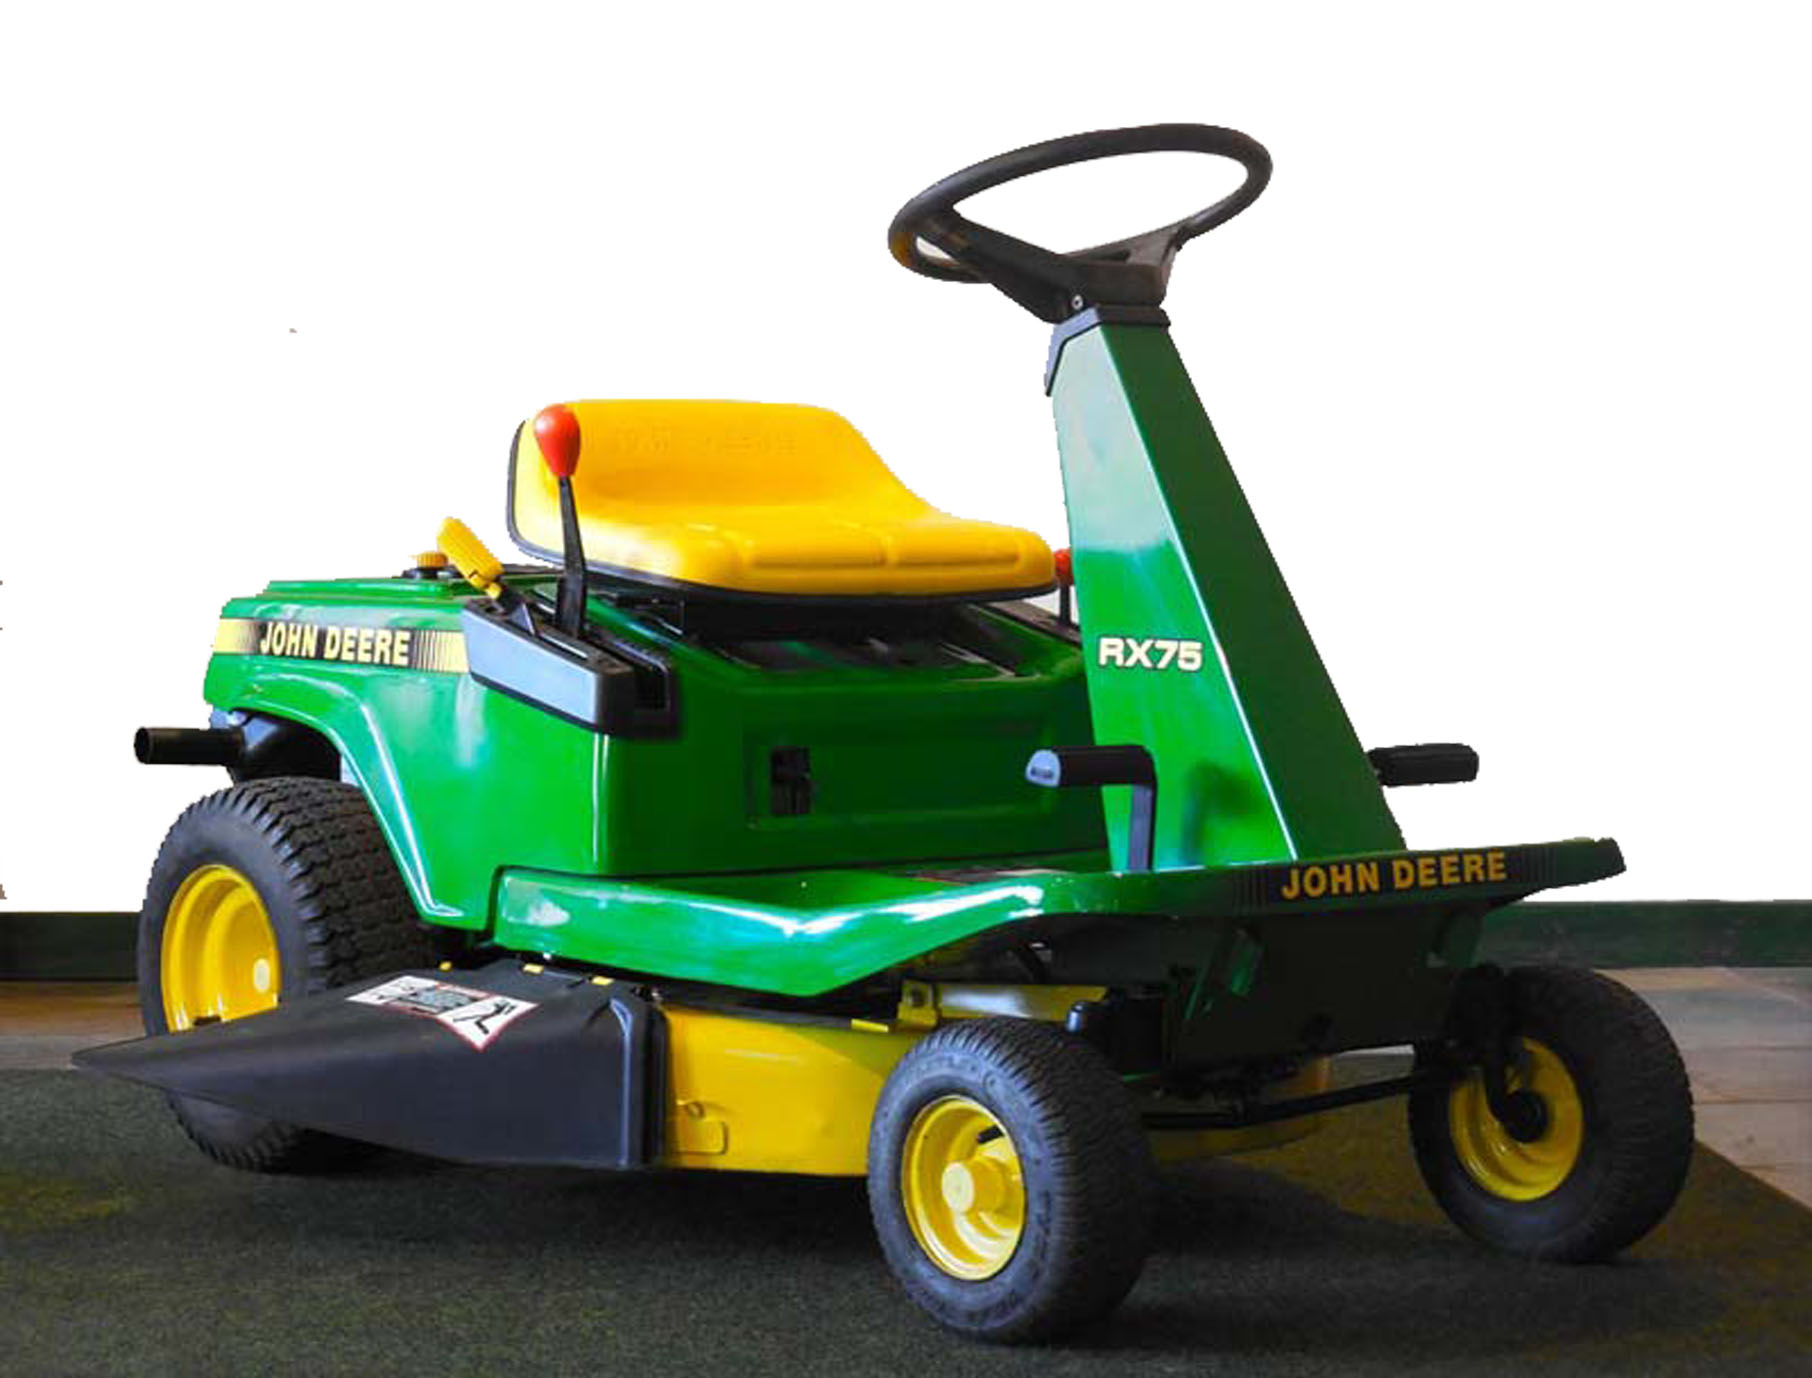 John Deere RX75 Riding Mower Price Specs